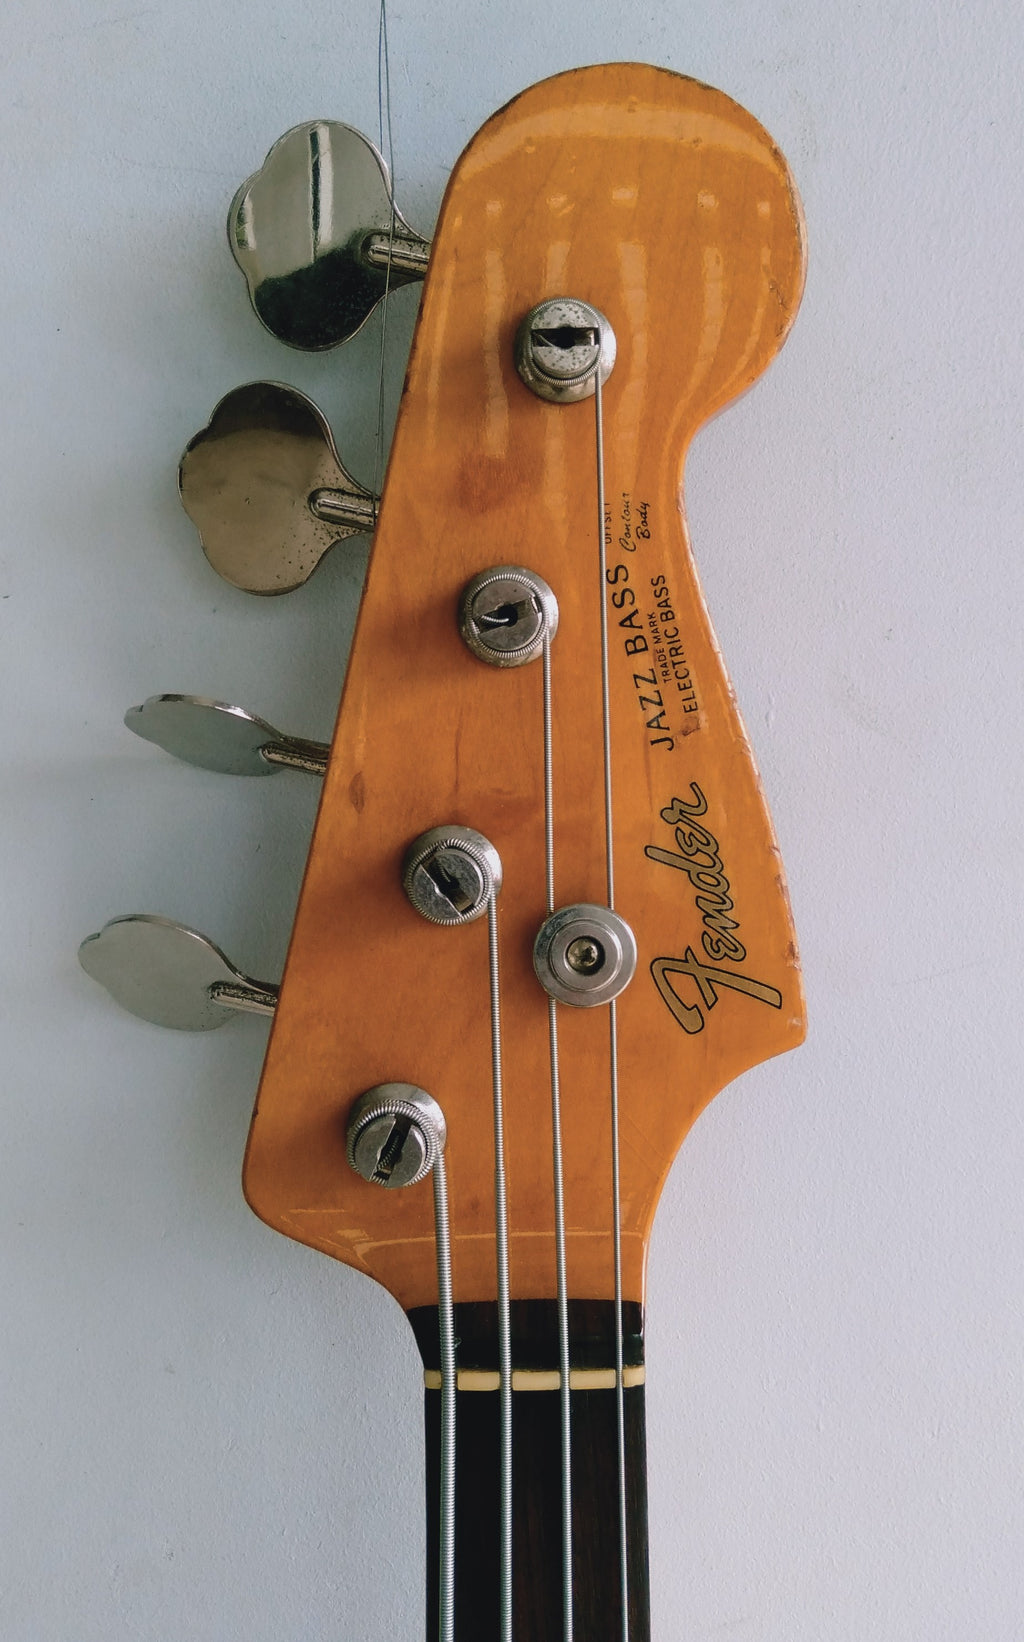 Fender Jazz bass 2004